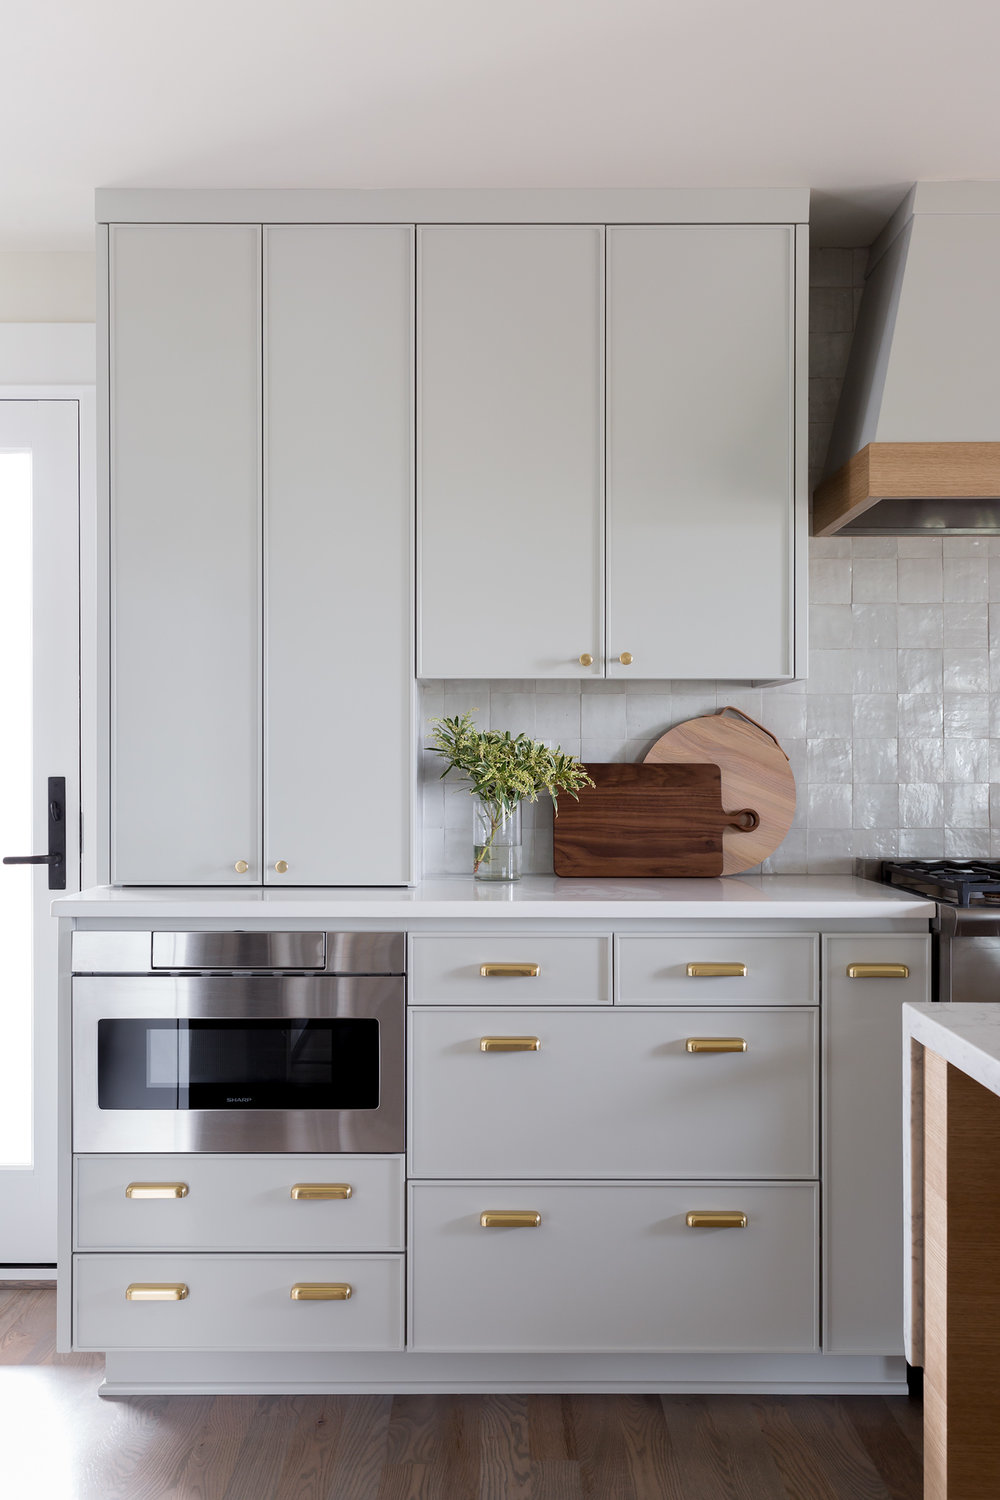 Modern Shaker Cabinets With Brass Hardware In 2020 New Kitchen Inspiration Gray Interiors Kitchen Inspirations